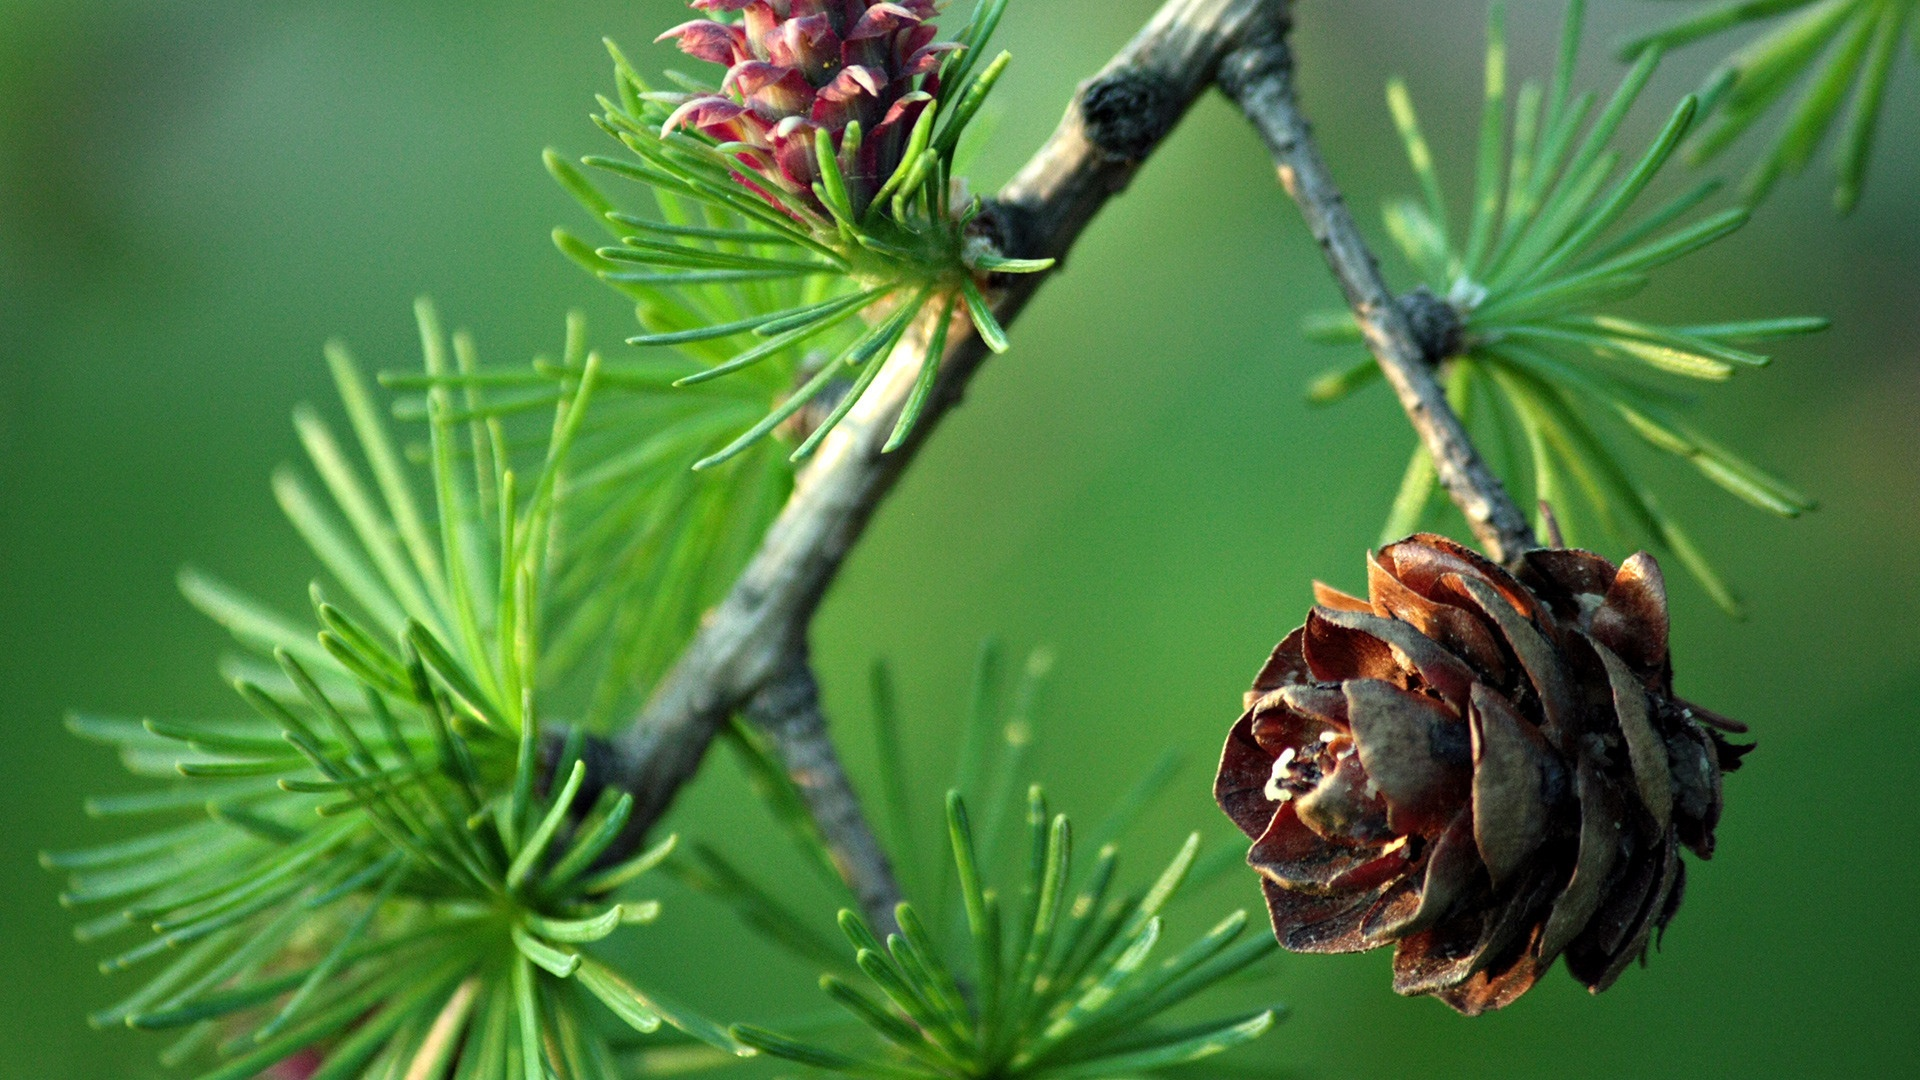 Beautiful Pinecone Wallpaper